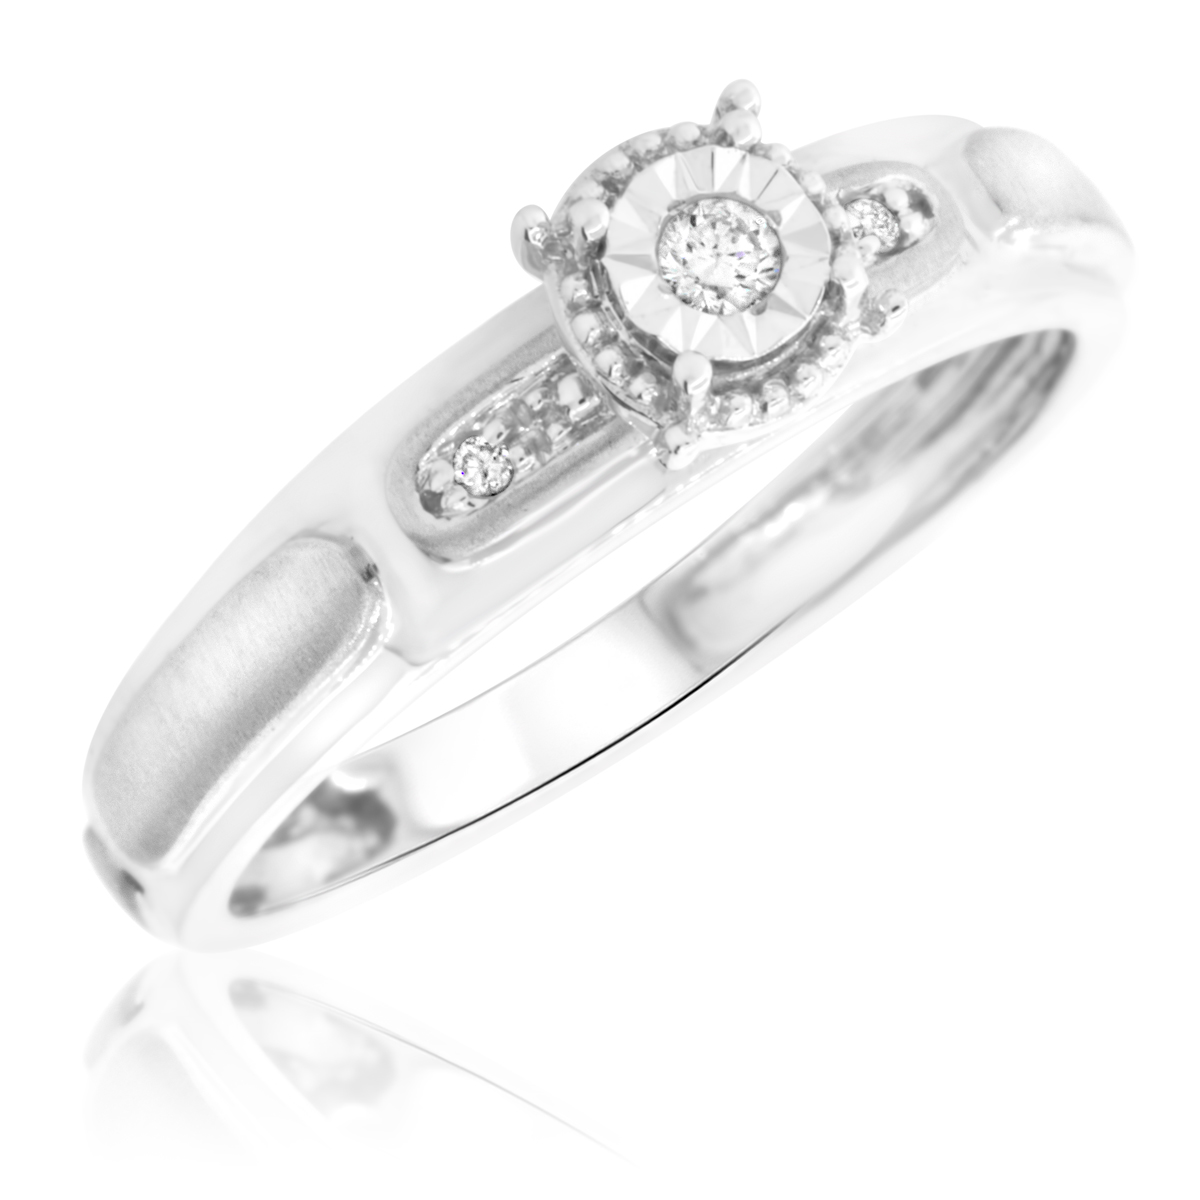 1/20 Carat T.W. Round Cut Diamond Ladies Engagement Ring 10K White Gold